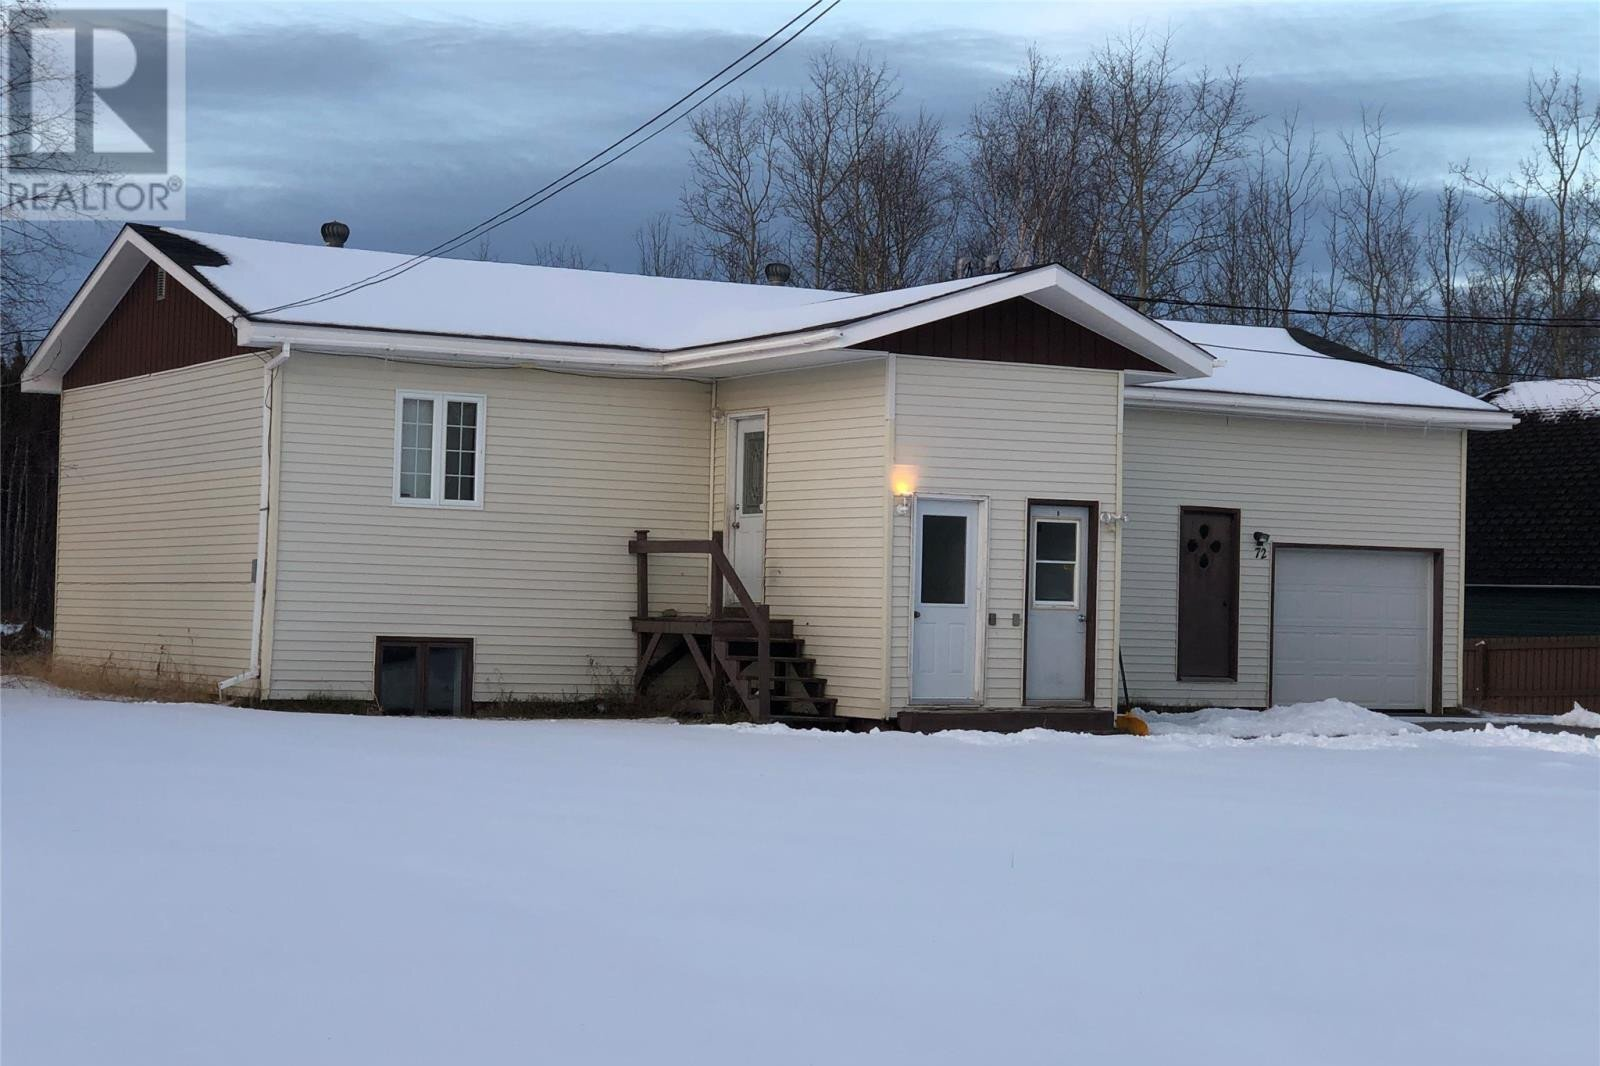 Residential property for sale at 72 Markland Rd Happy Valley - Goose Bay Newfoundland - MLS: 1223340